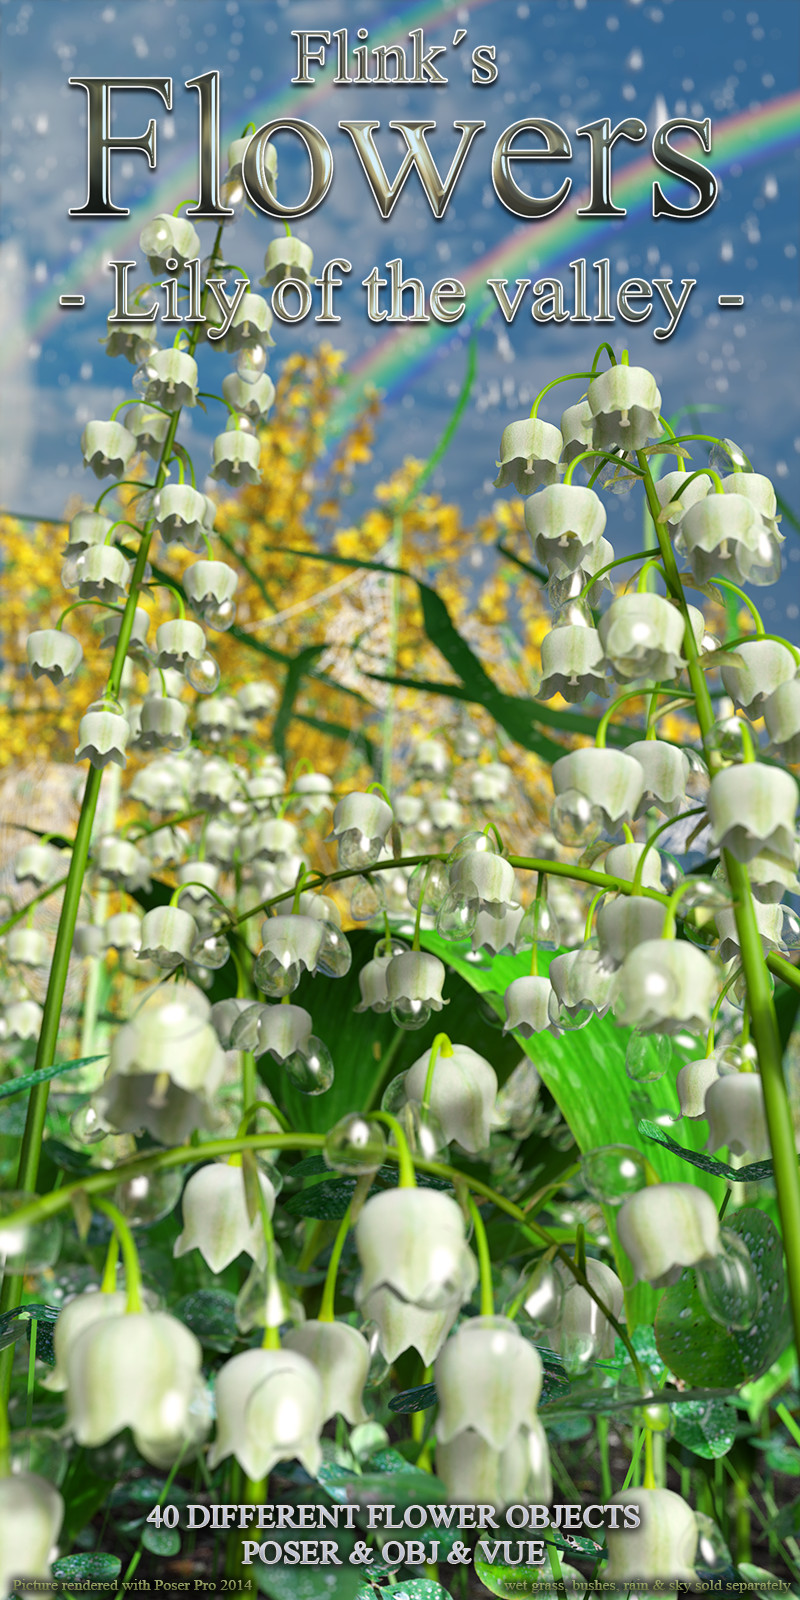 Flinks Flowers - Lily of the valley